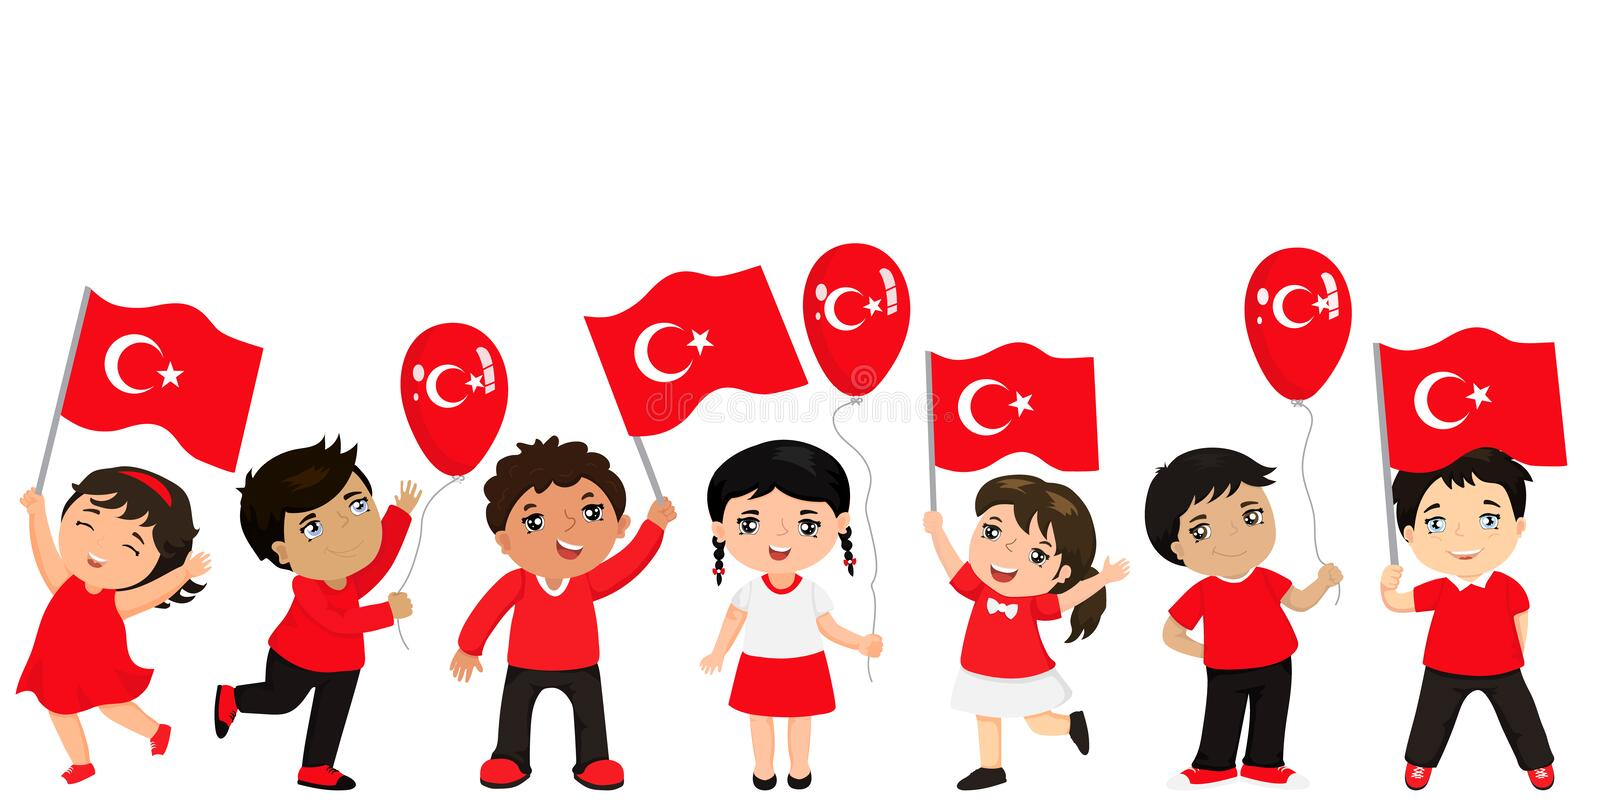 Funny kids of different races with various hairstyles with flags. graphic design to the Turkish holiday. vector illustration